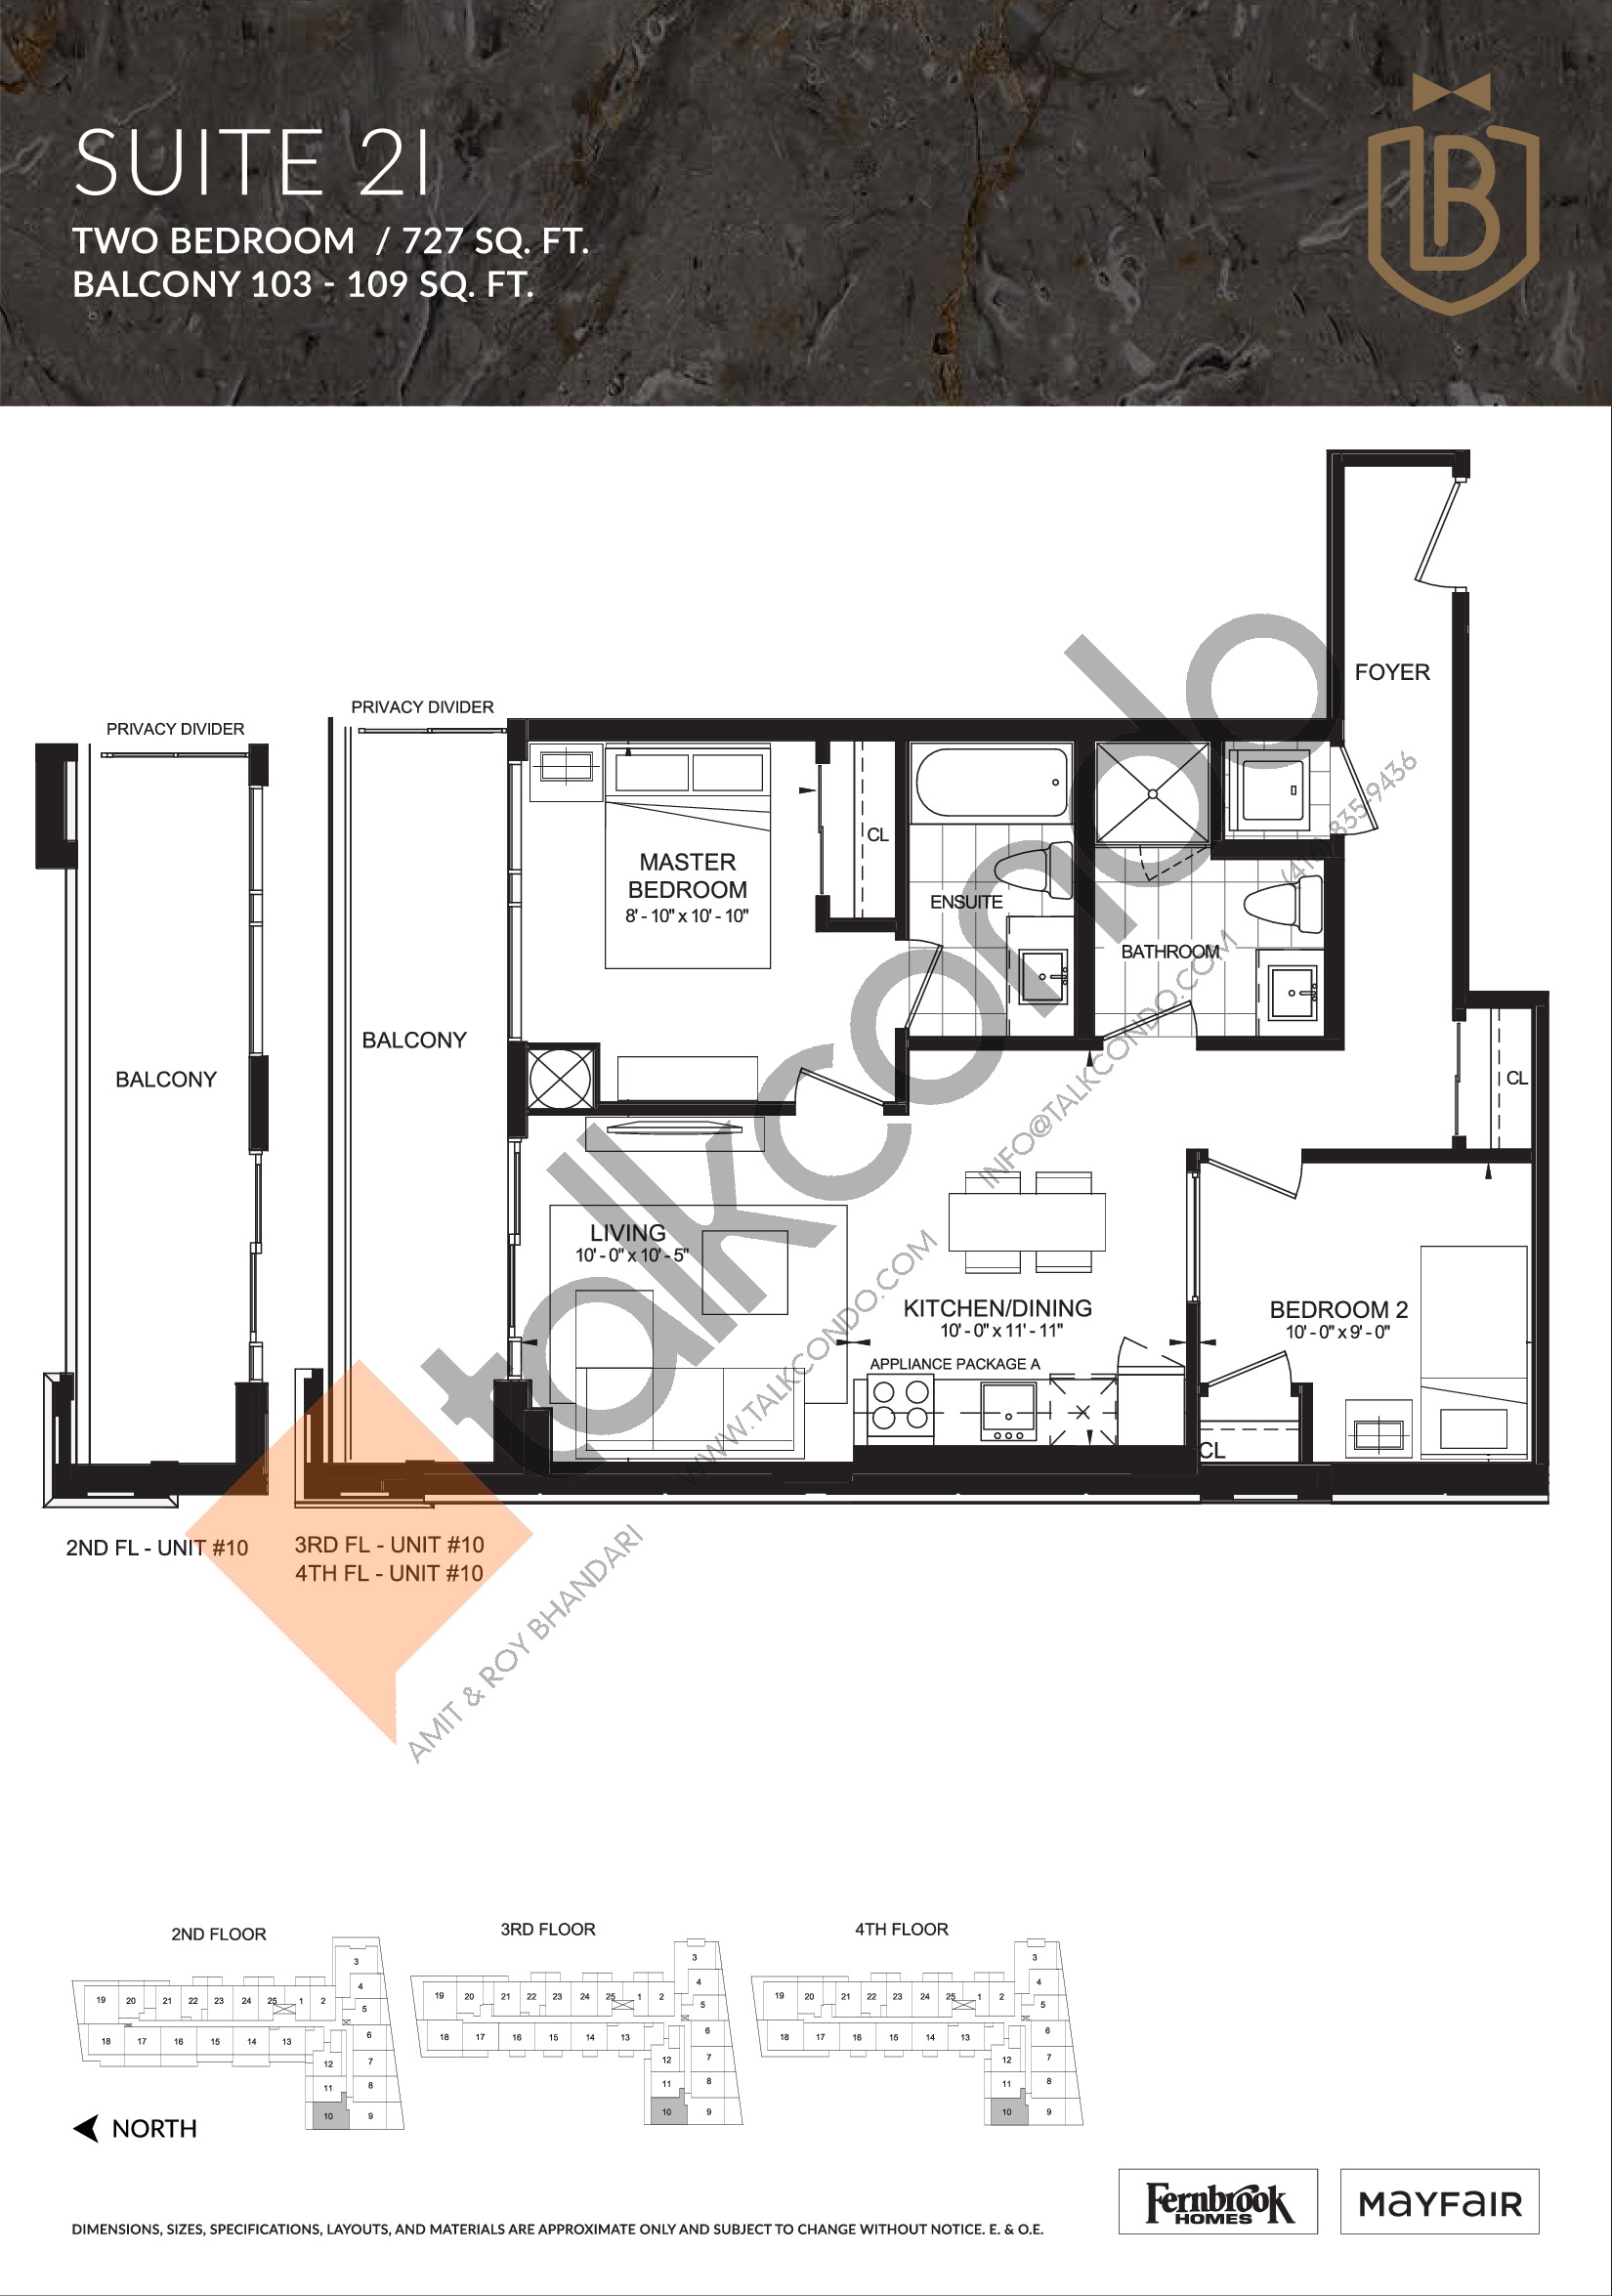 Suite 2I Floor Plan at The Butler Condos - 727 sq.ft